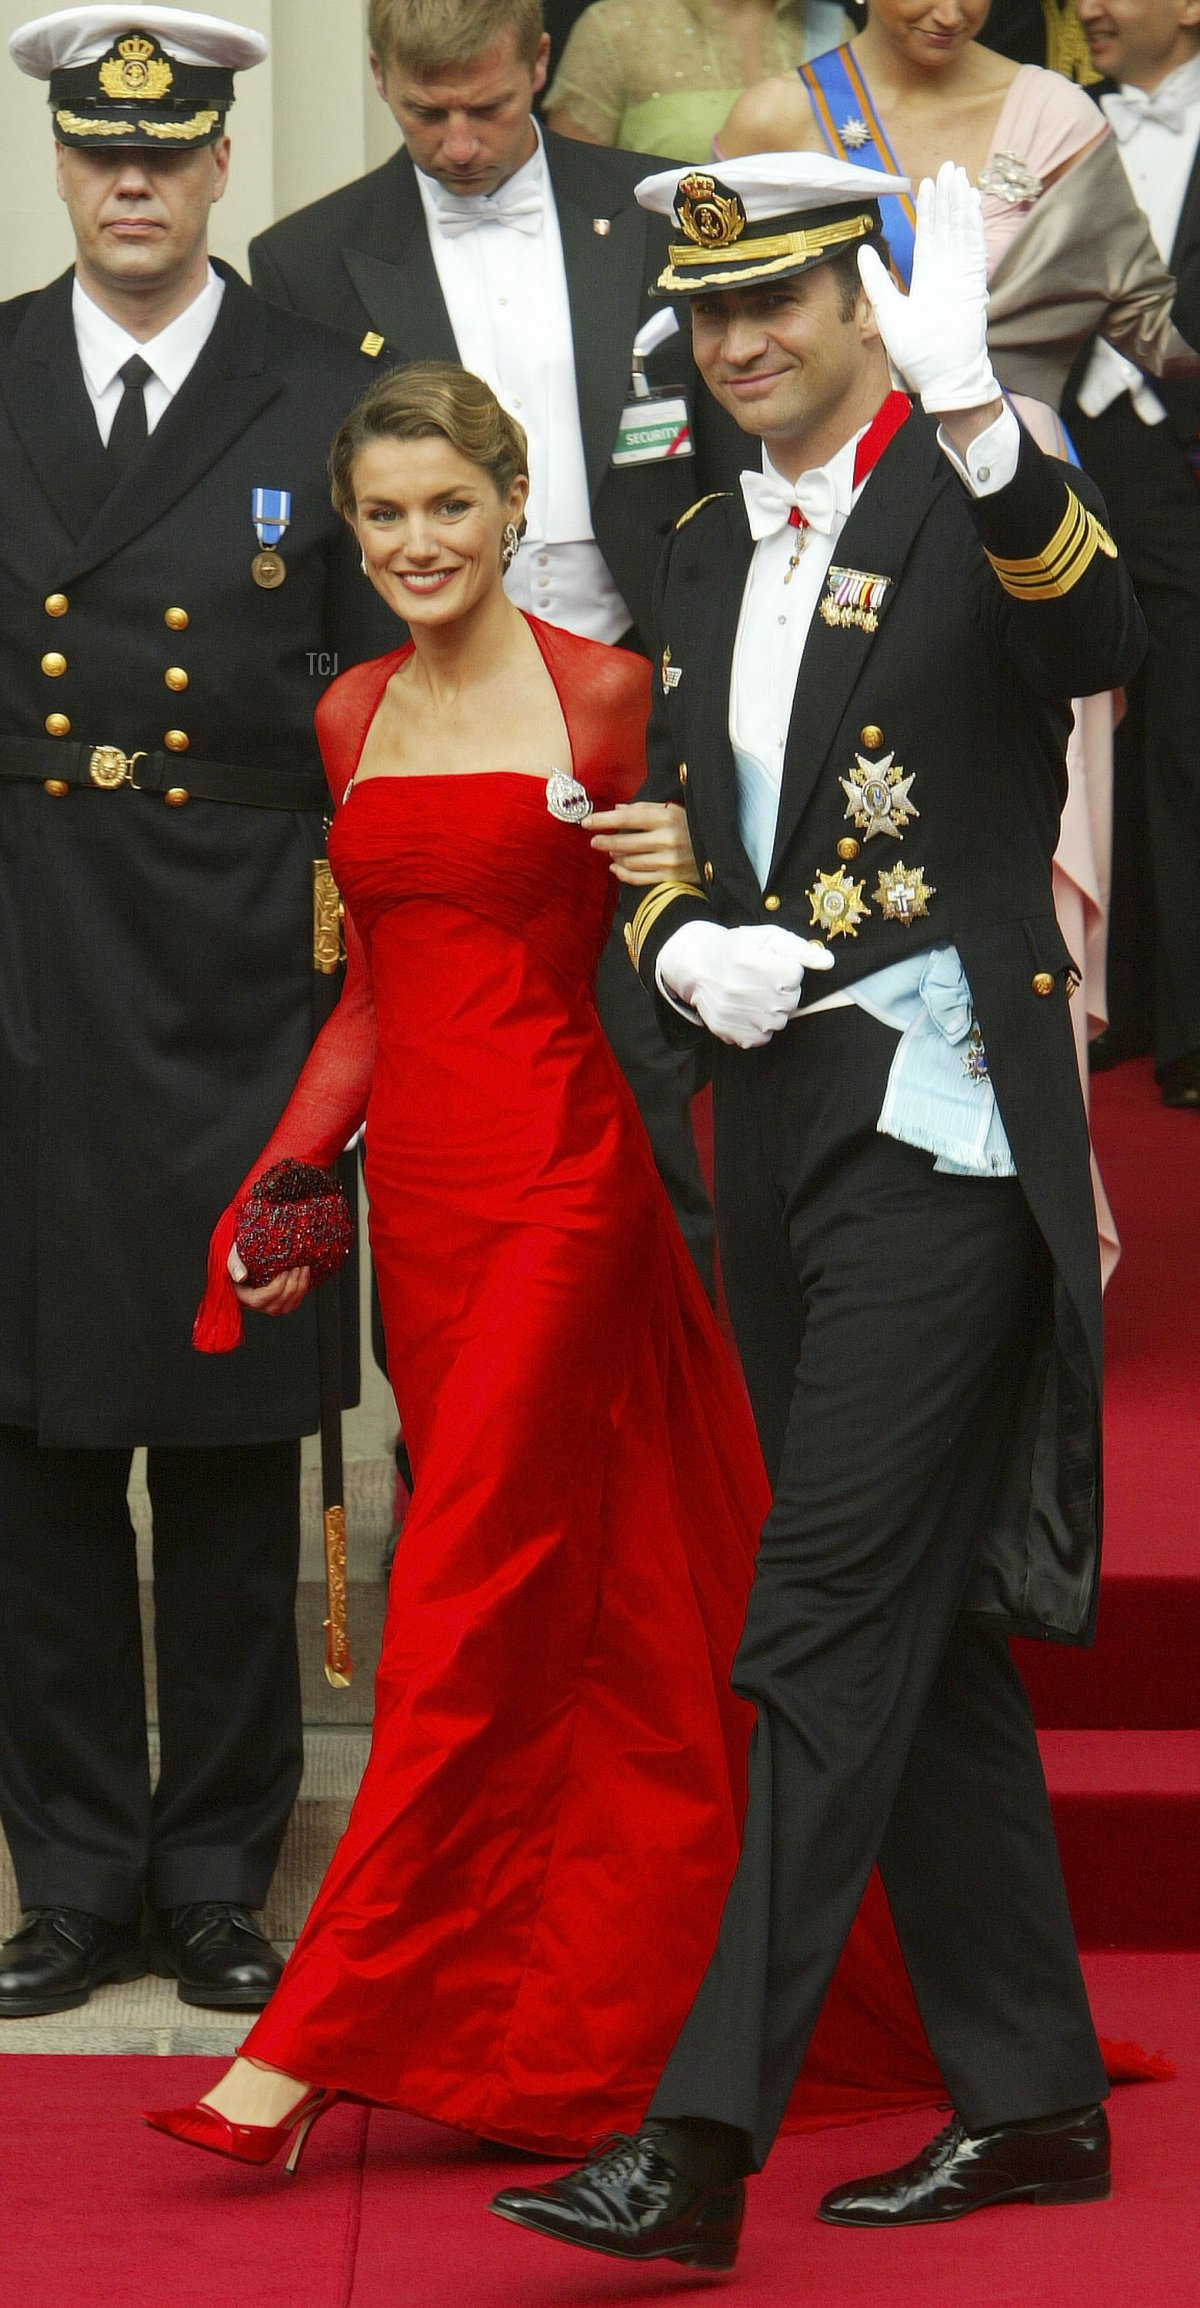 Prince Felipe and fiancee Letizia Ortiz Rocasolano leave Copenhagen Cathedral after the wedding ceremony between Danish Crown Prince Frederik and his bride Crown Princess Mary May 14, 2004 in Copenhagen, Denmark